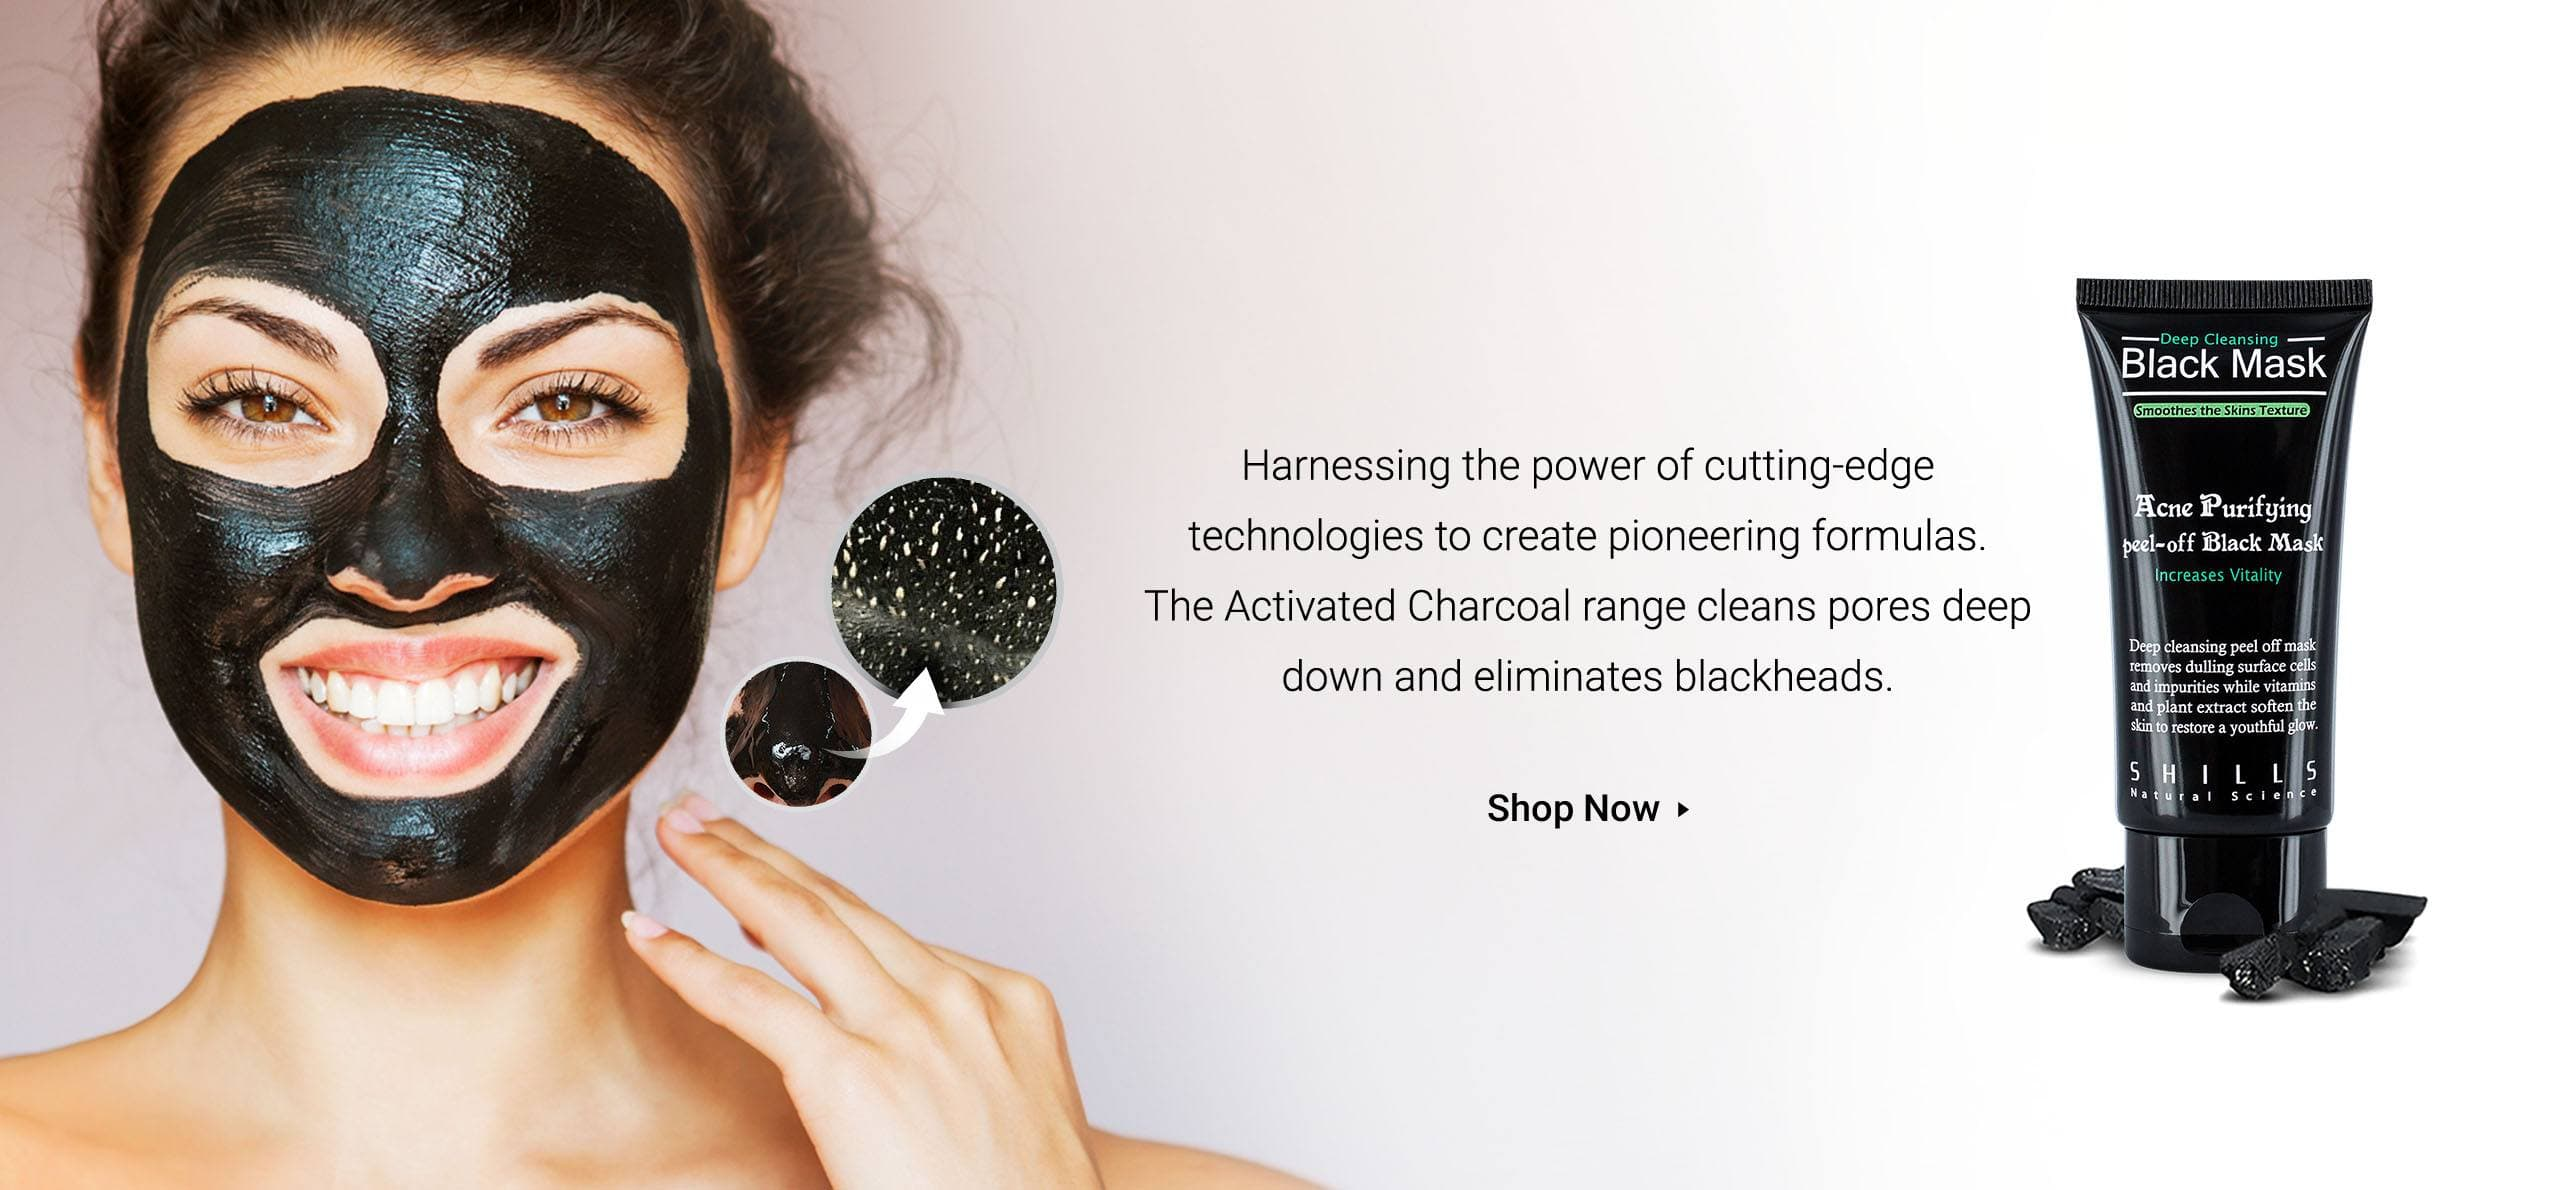 Activated Charcoal Range and Black Mask Banner